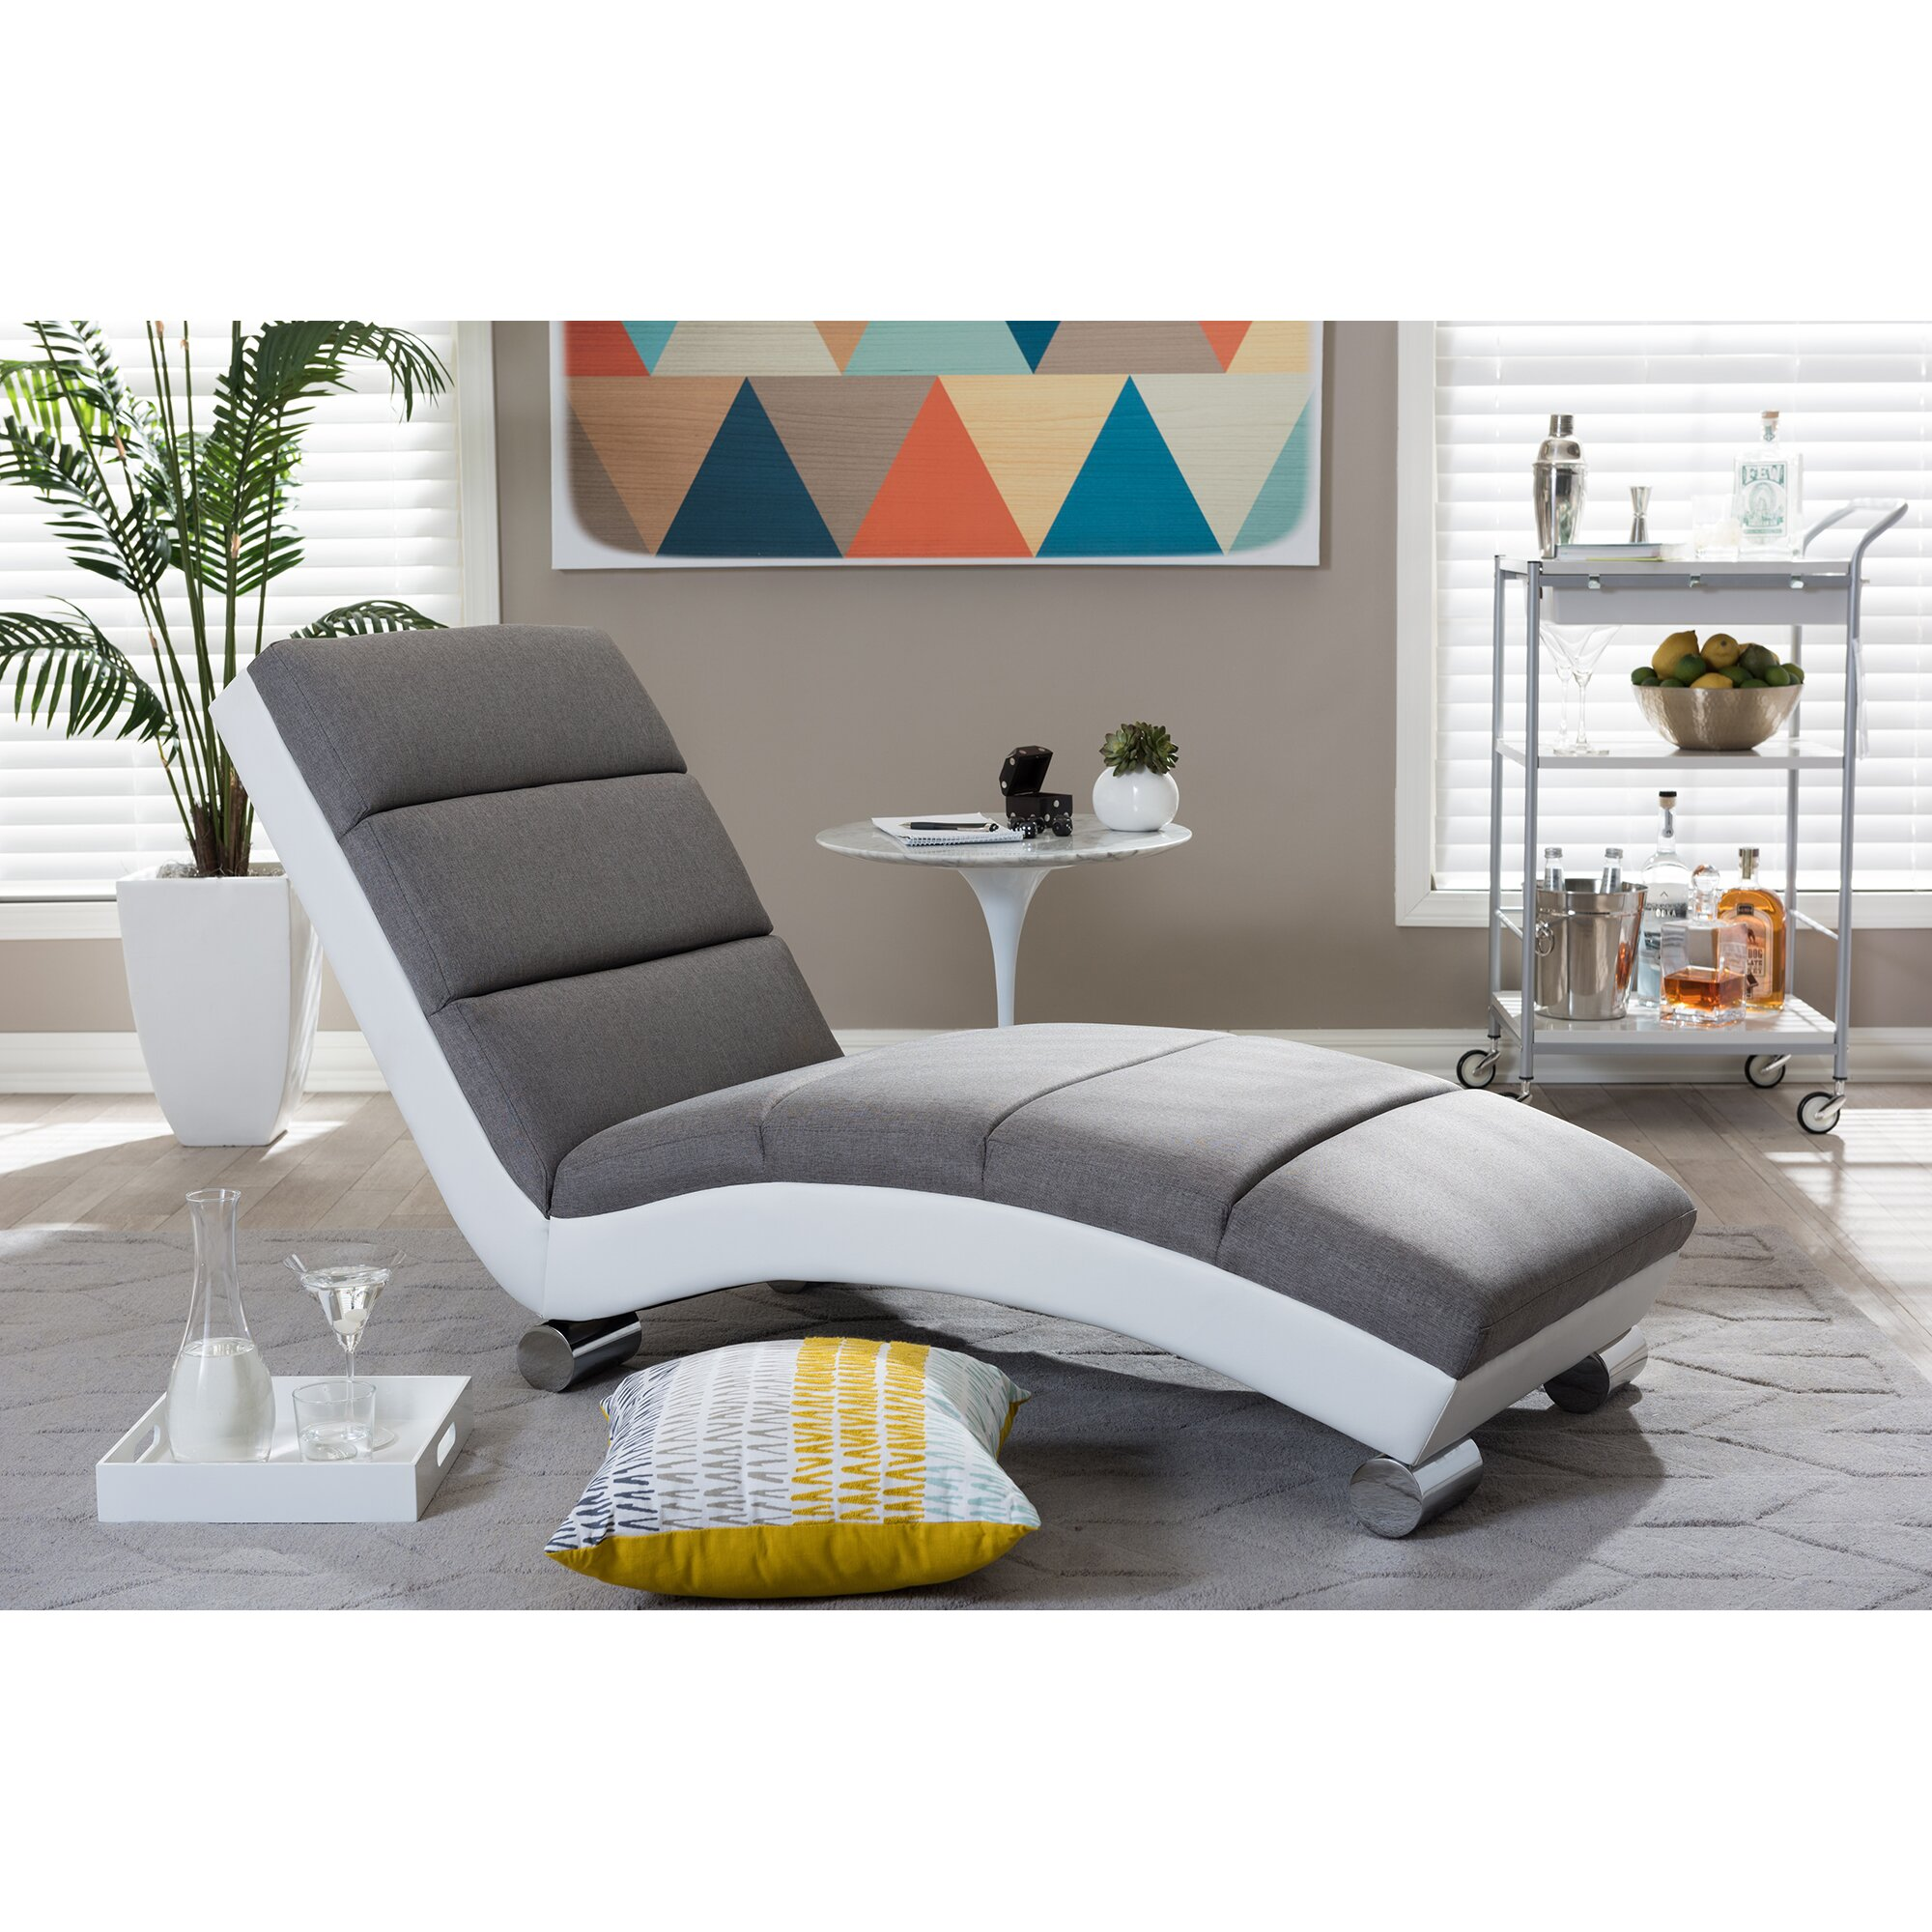 Wholesale interiors baxton studio chaise lounge reviews for Chaise interiors